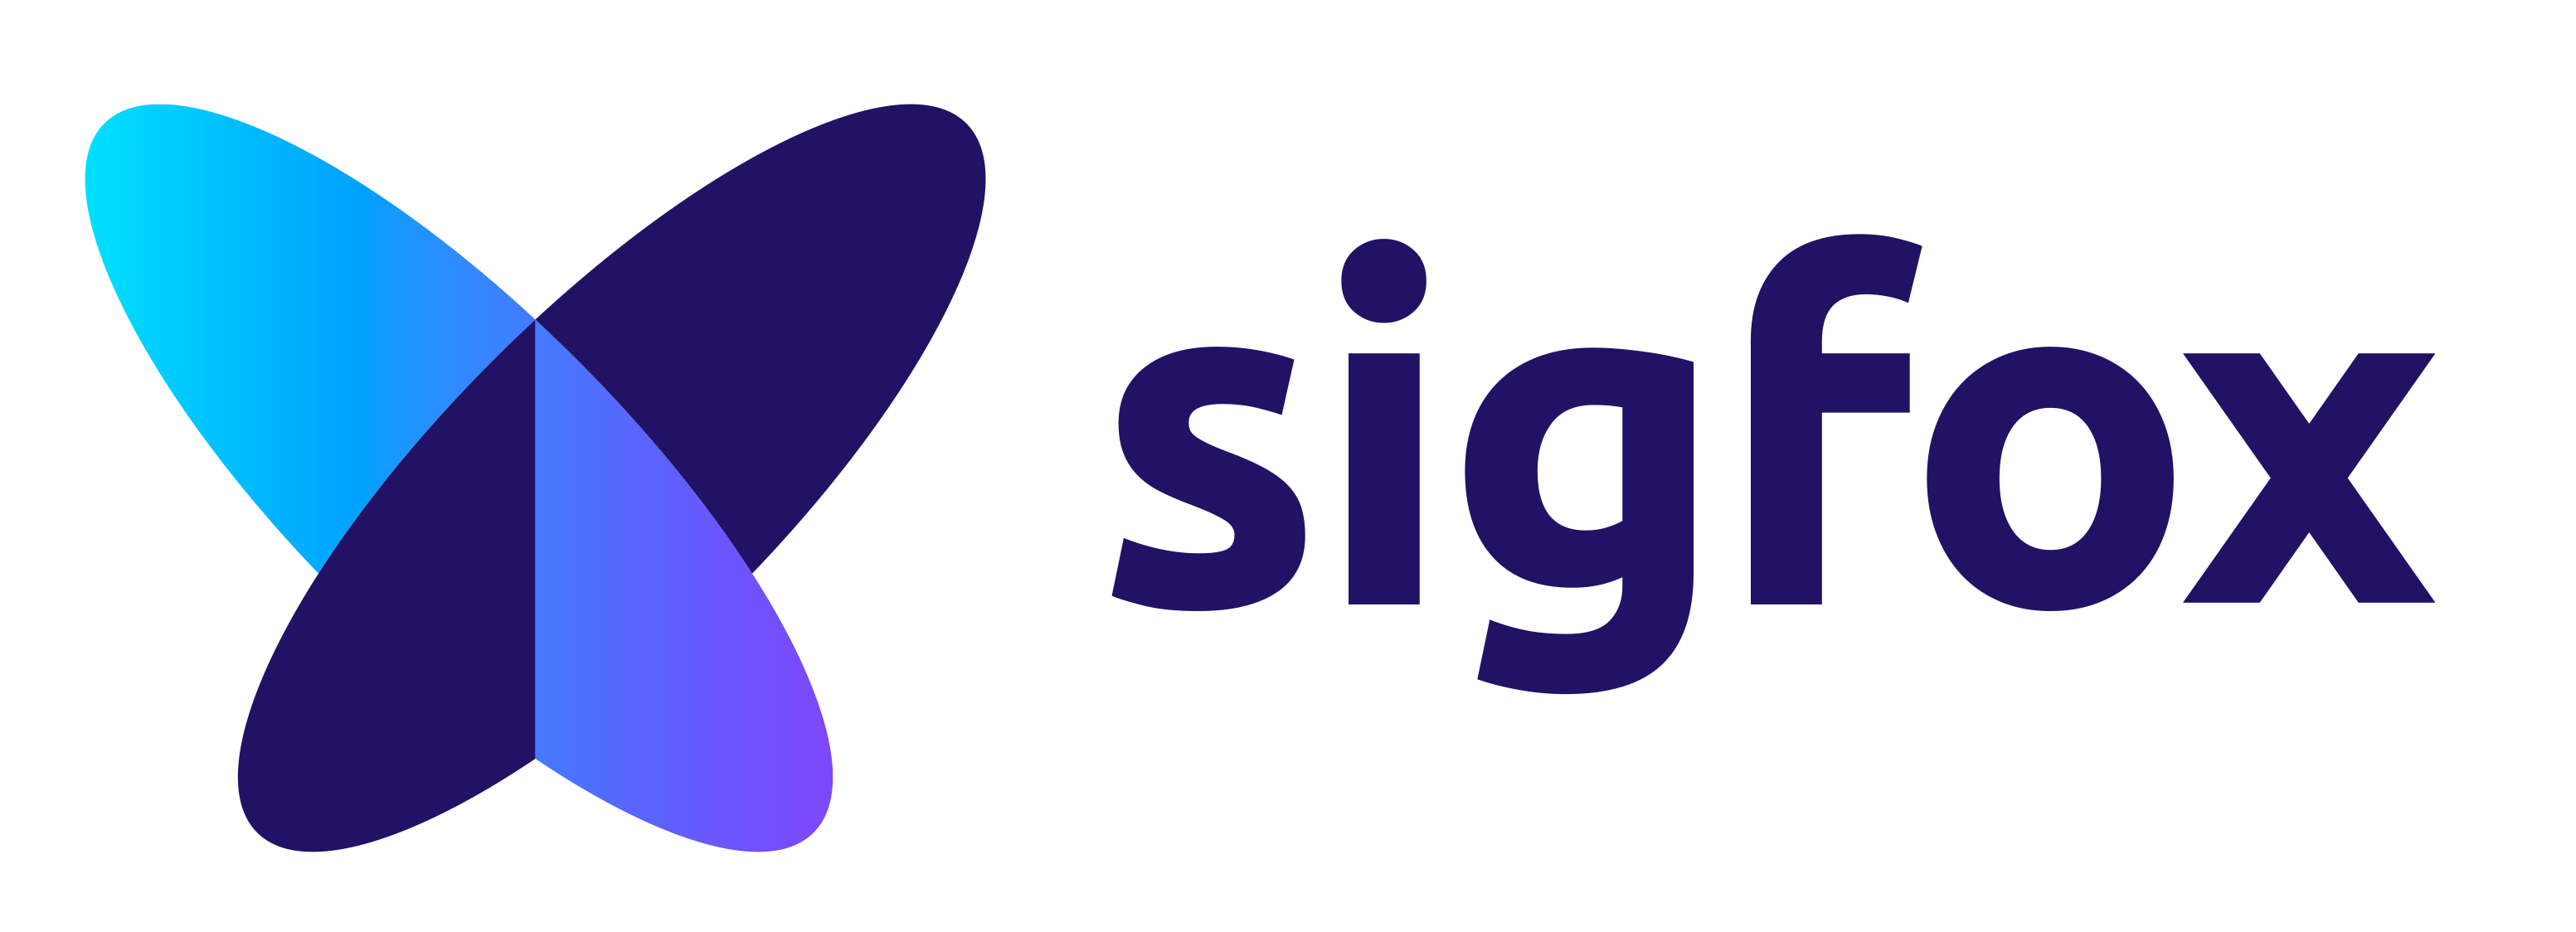 Sigfox Opens New Office in Dallas to Serve as North America Hub for U.S. Network Deployment